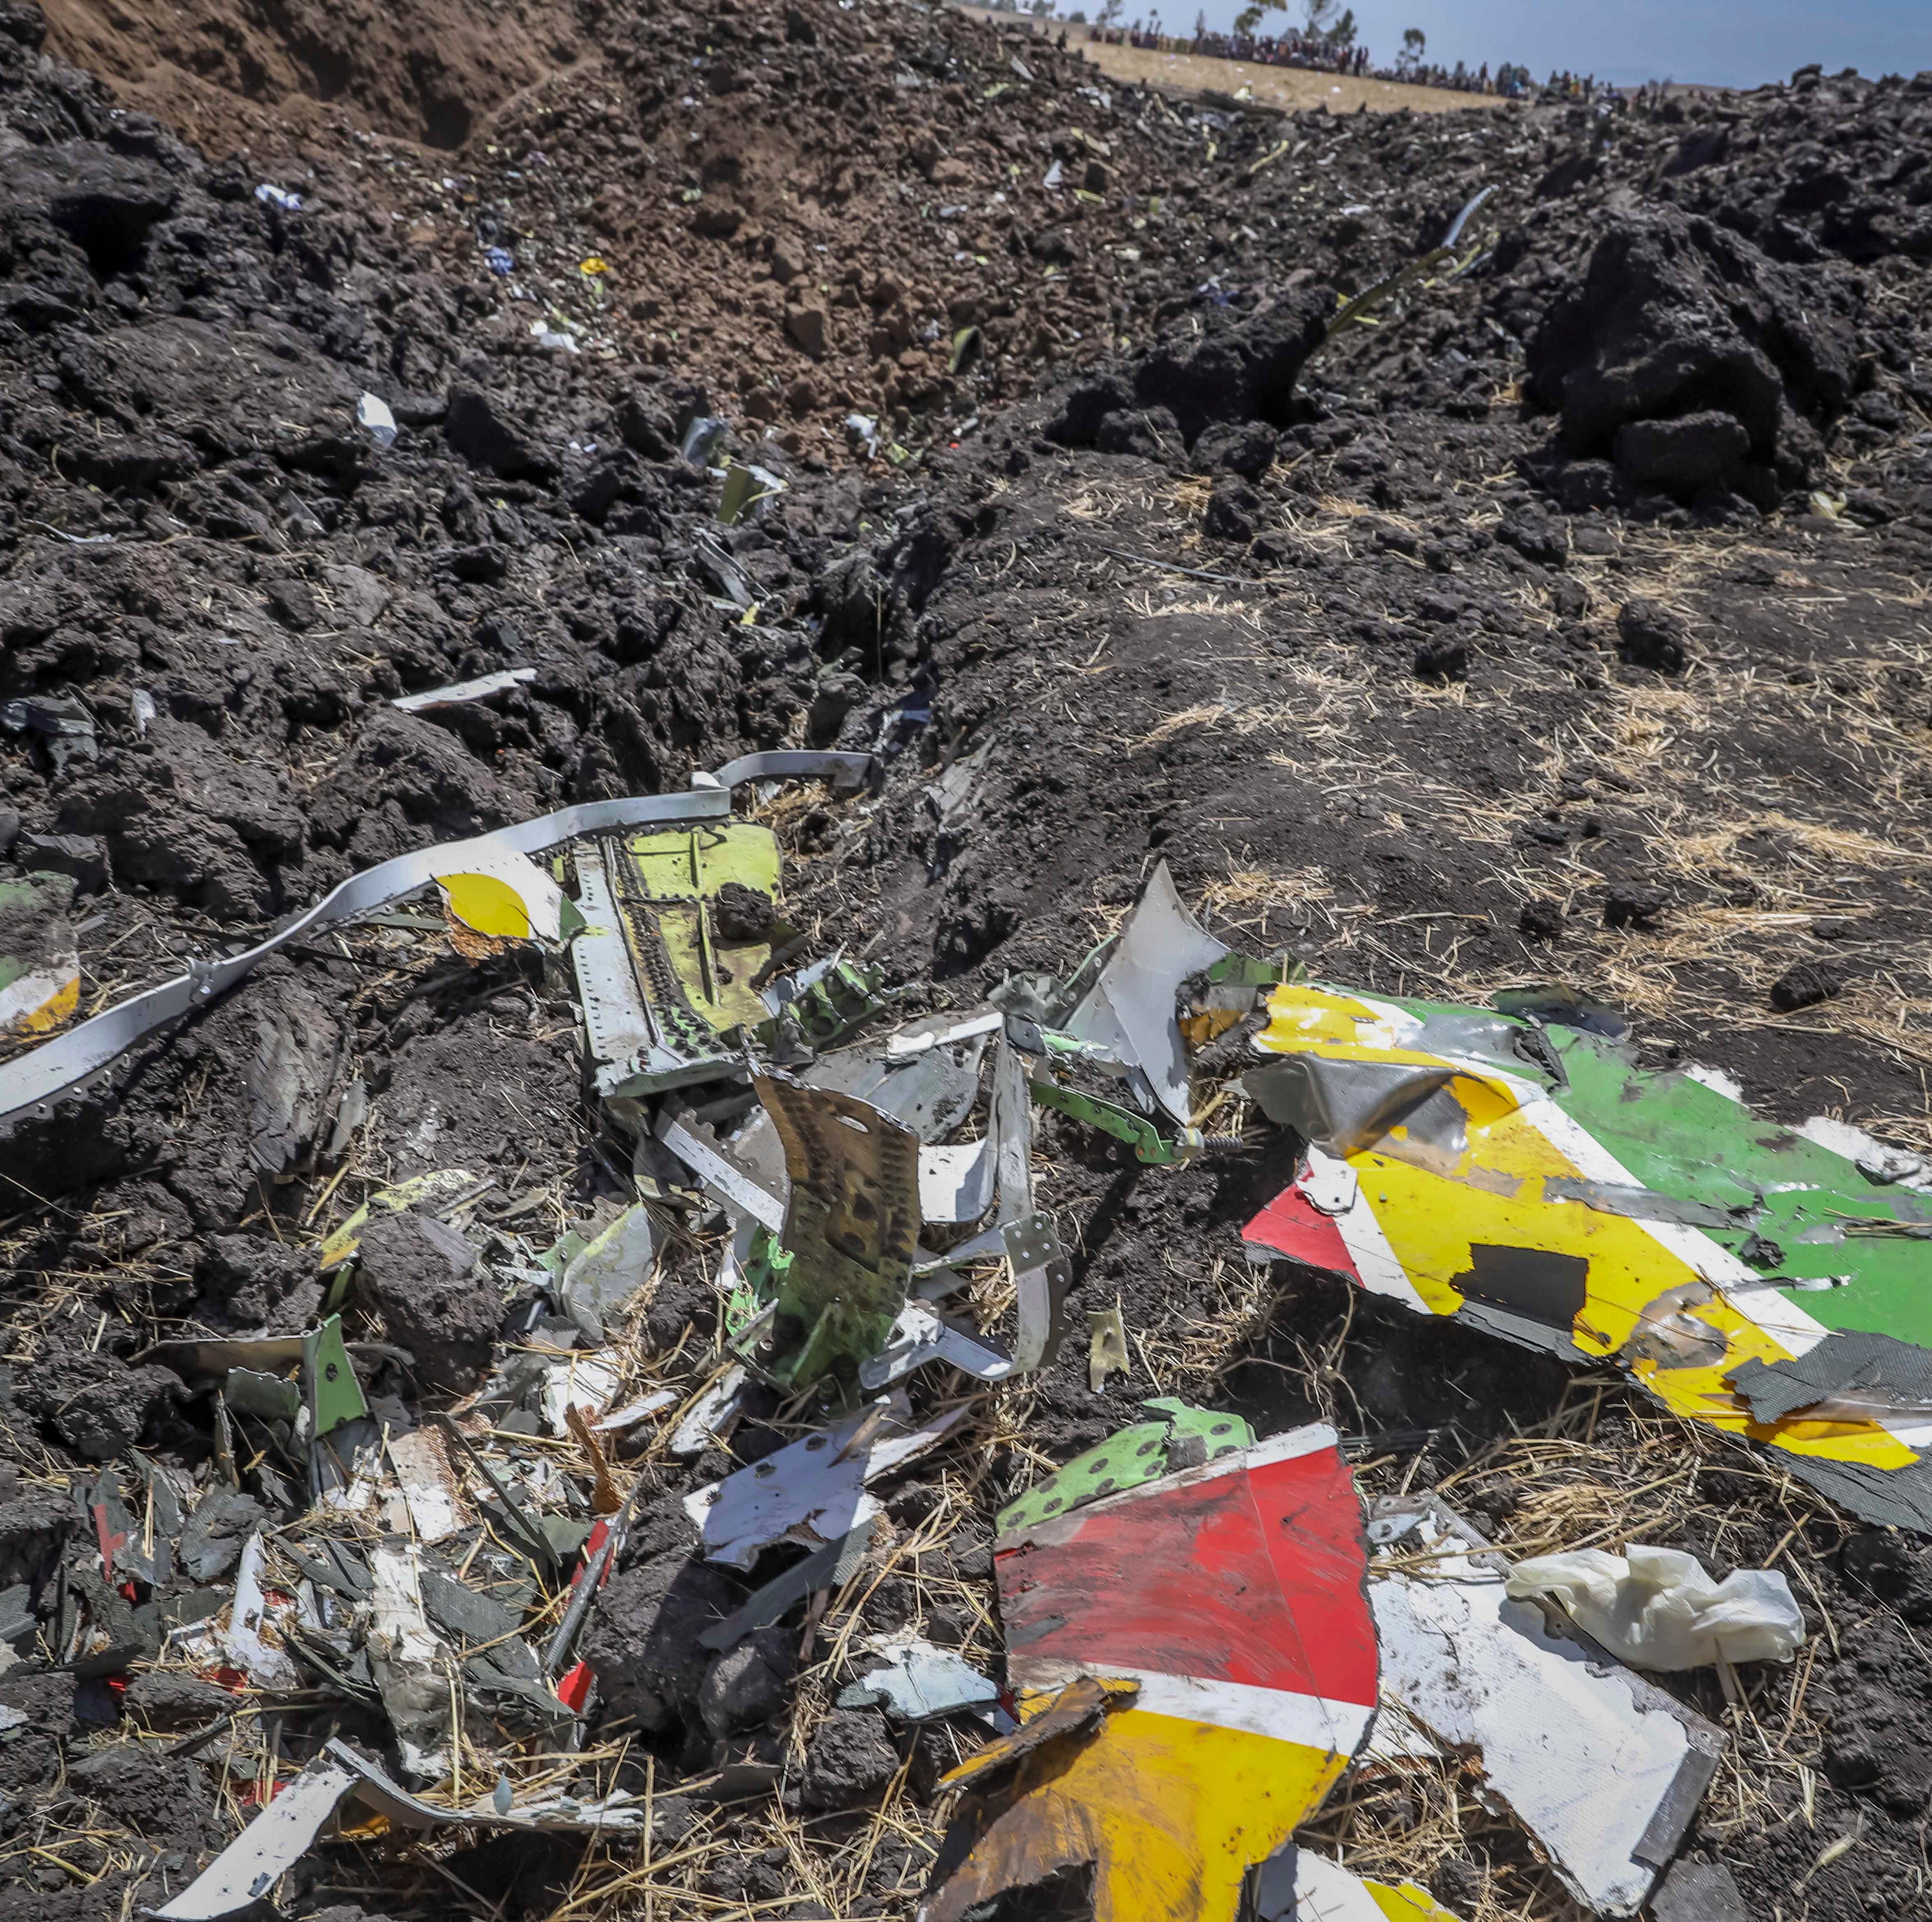 'A punch in the nose for Boeing': Second fatal crash raises questions about plane's safety